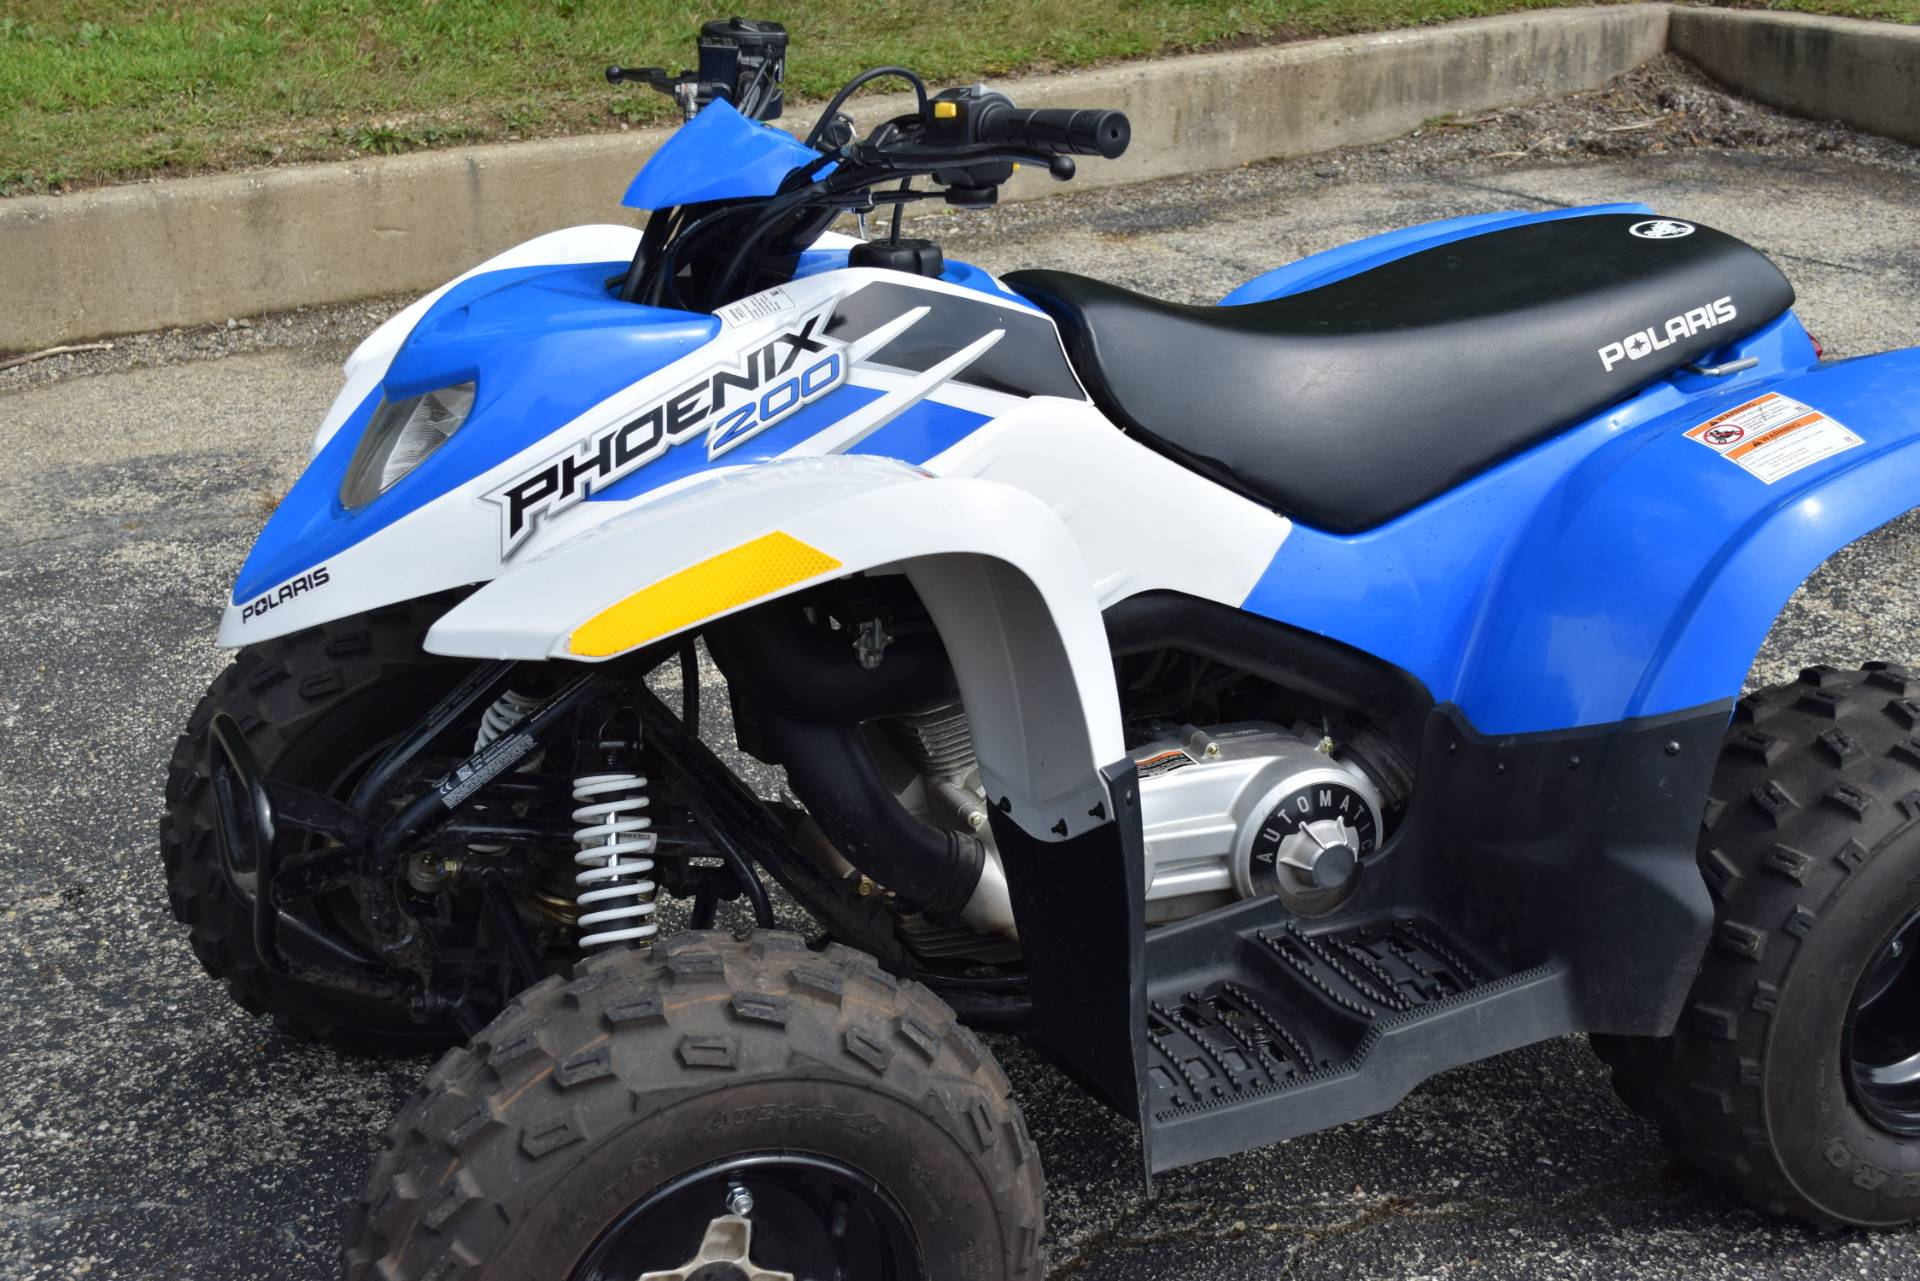 2016 Polaris Phoenix 200 in Wauconda, Illinois - Photo 21